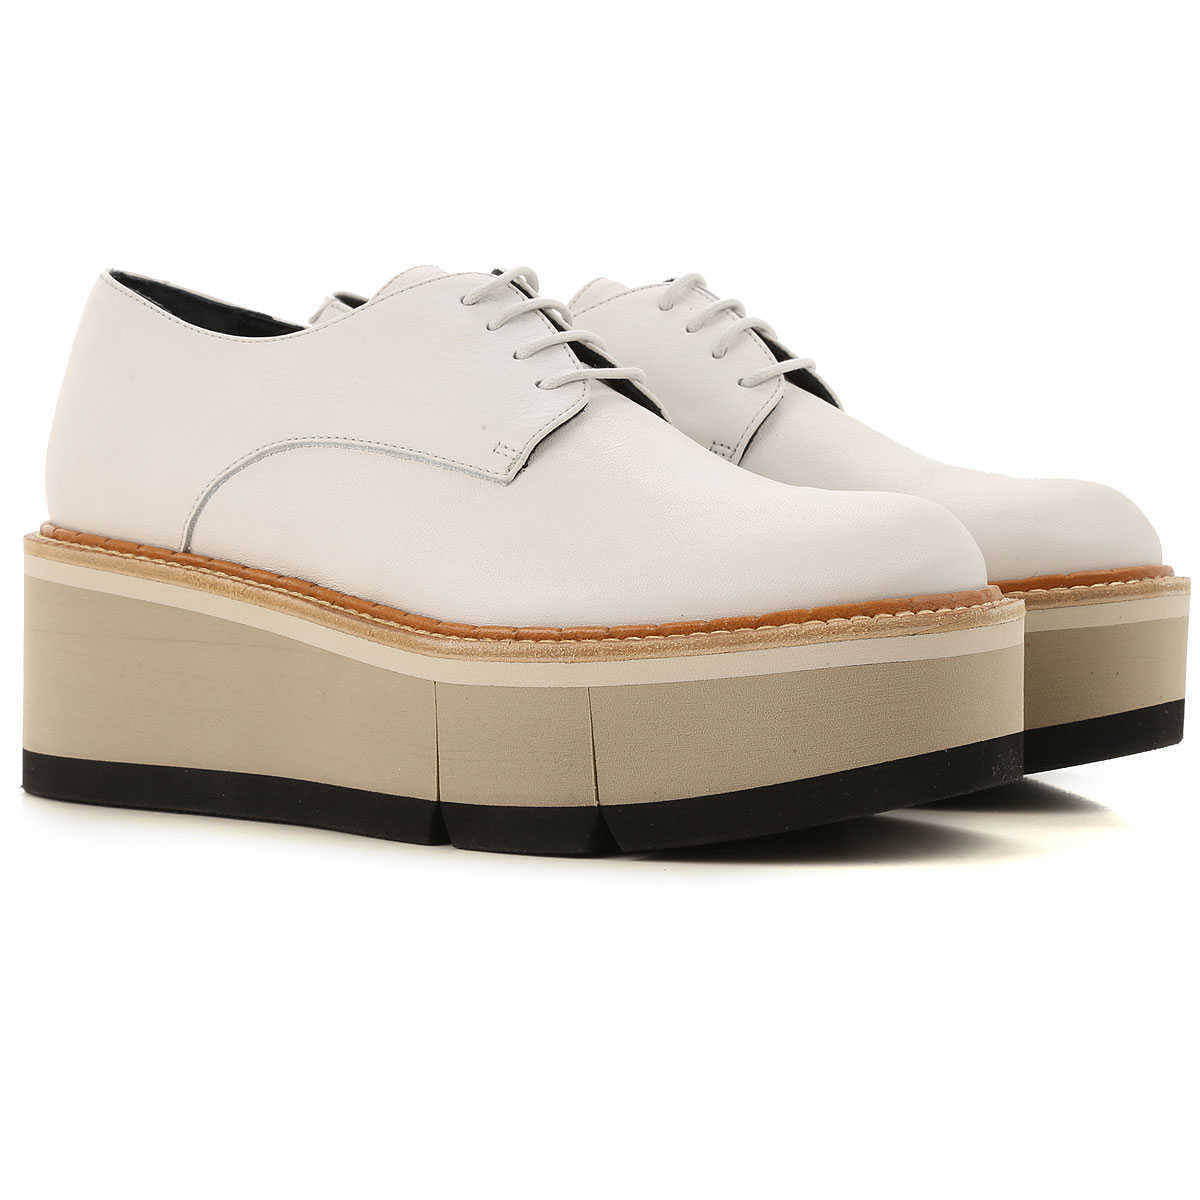 Paloma Barcelo Lace Up Shoes for Men Oxfords 2.5 4.5 5.5 6.5 7.5 Derbies and Brogues UK - GOOFASH